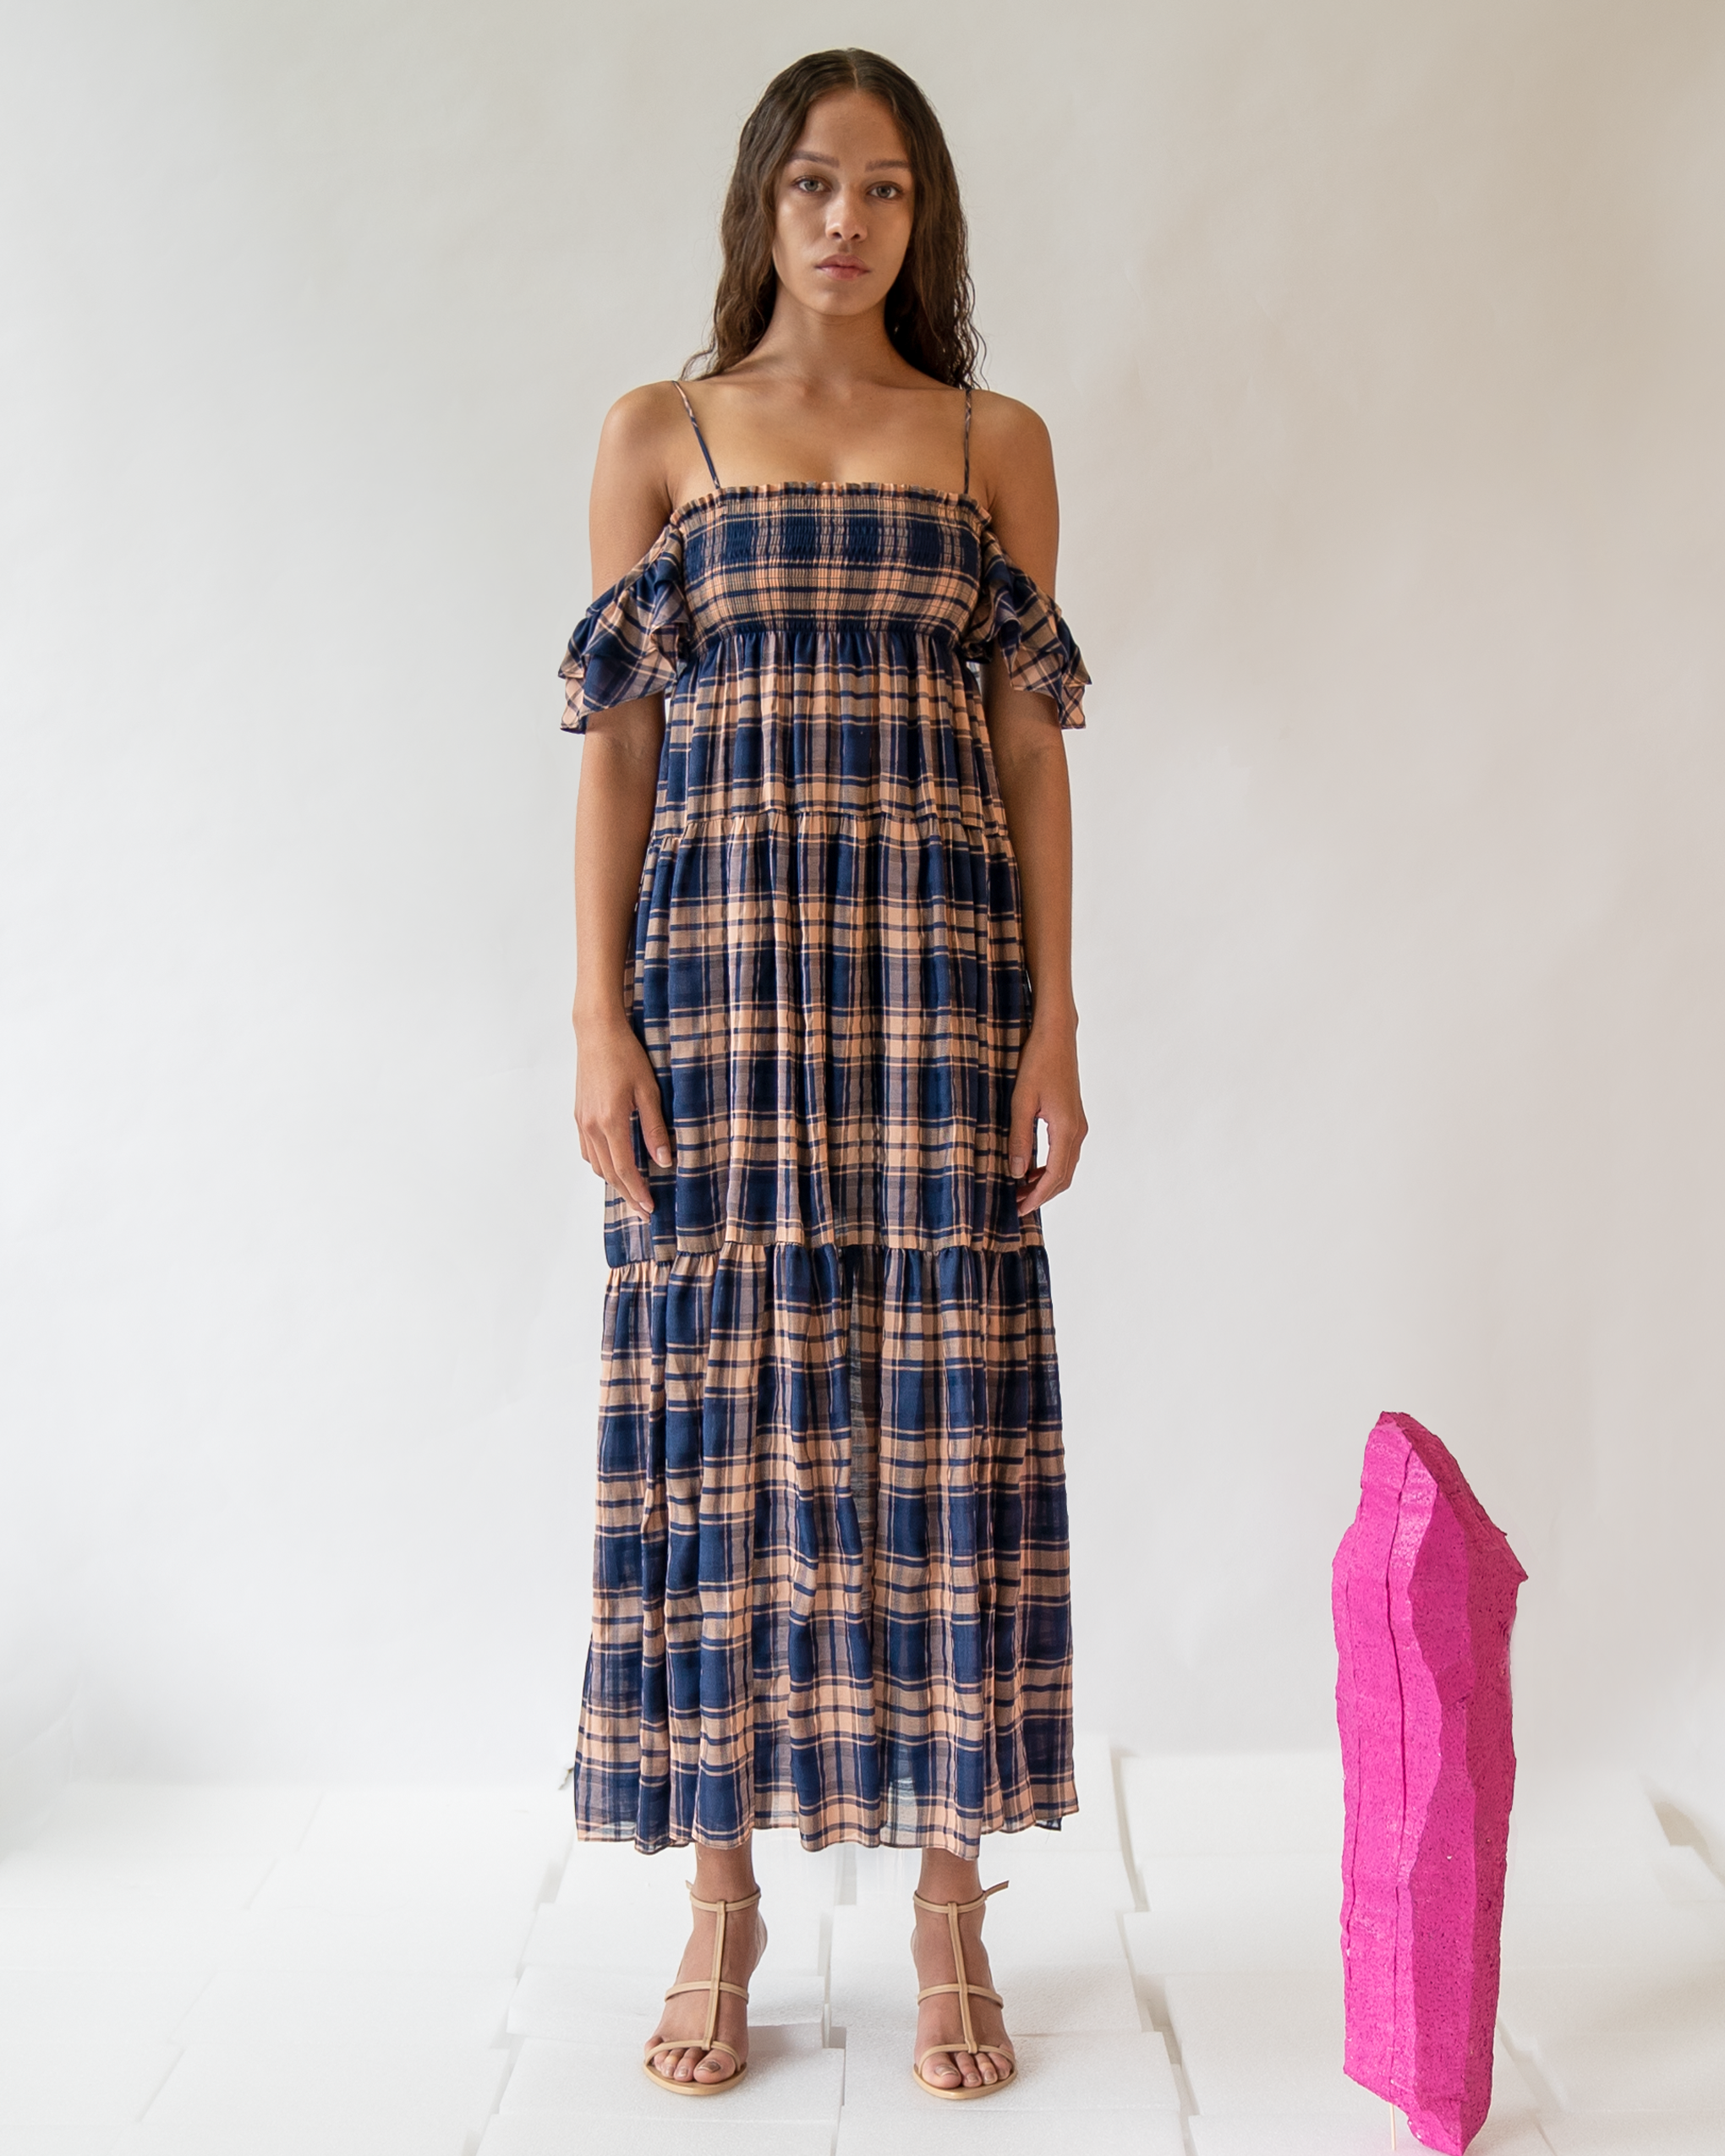 A woman is wearing navy-check pattern off-the-shoulder dress.